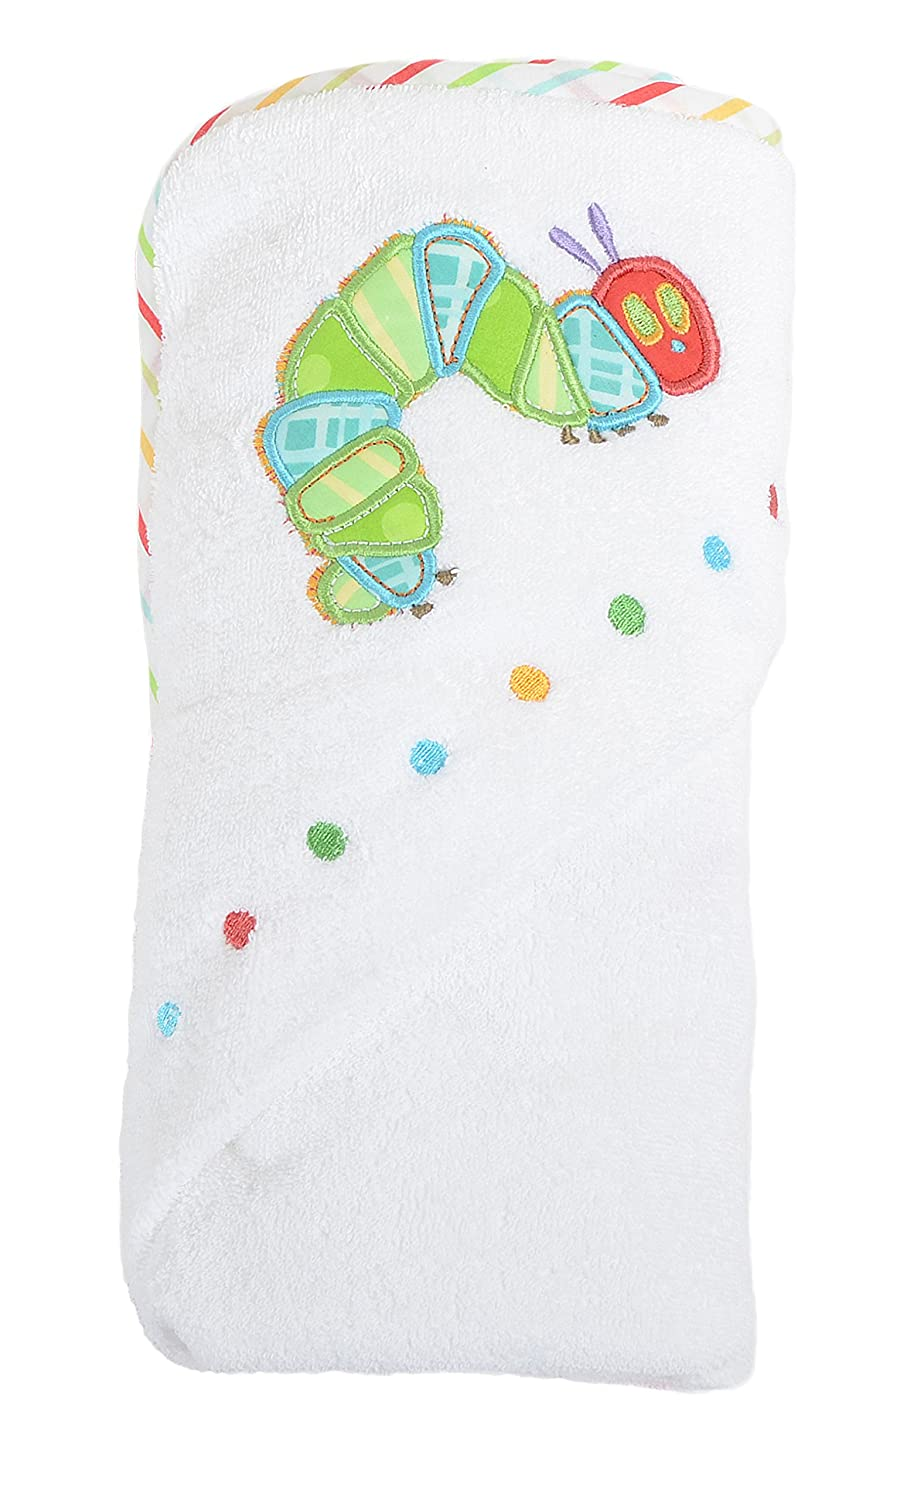 The Very Hungry Caterpillar Baby Cuddle Robe Hooded Towel